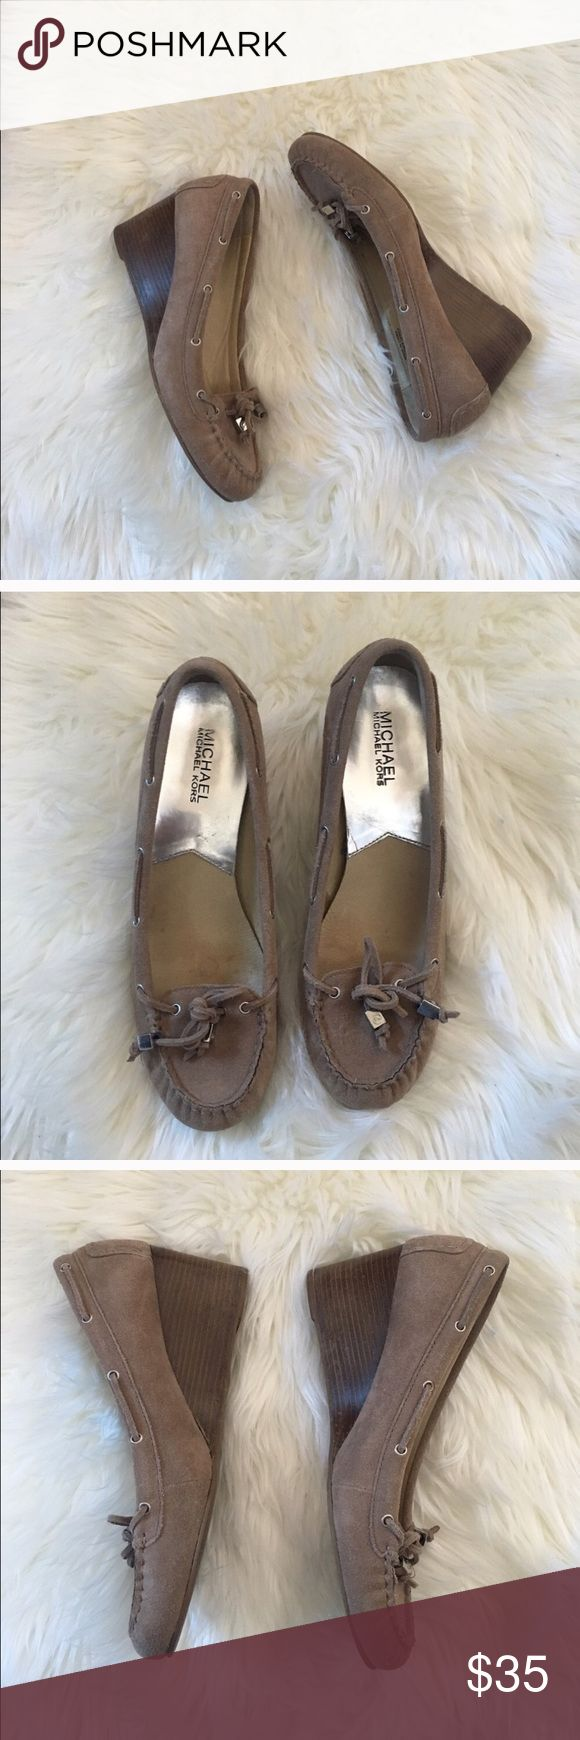 New Michael Kors Suede Wedge Loafers Excellent condition with no flaws and tons of life left! Like new condition! Size 8 women's. BUNDLES ARE DISCOUNTED 💕 NO TRADES PLEASE Michael Kors Shoes Heels